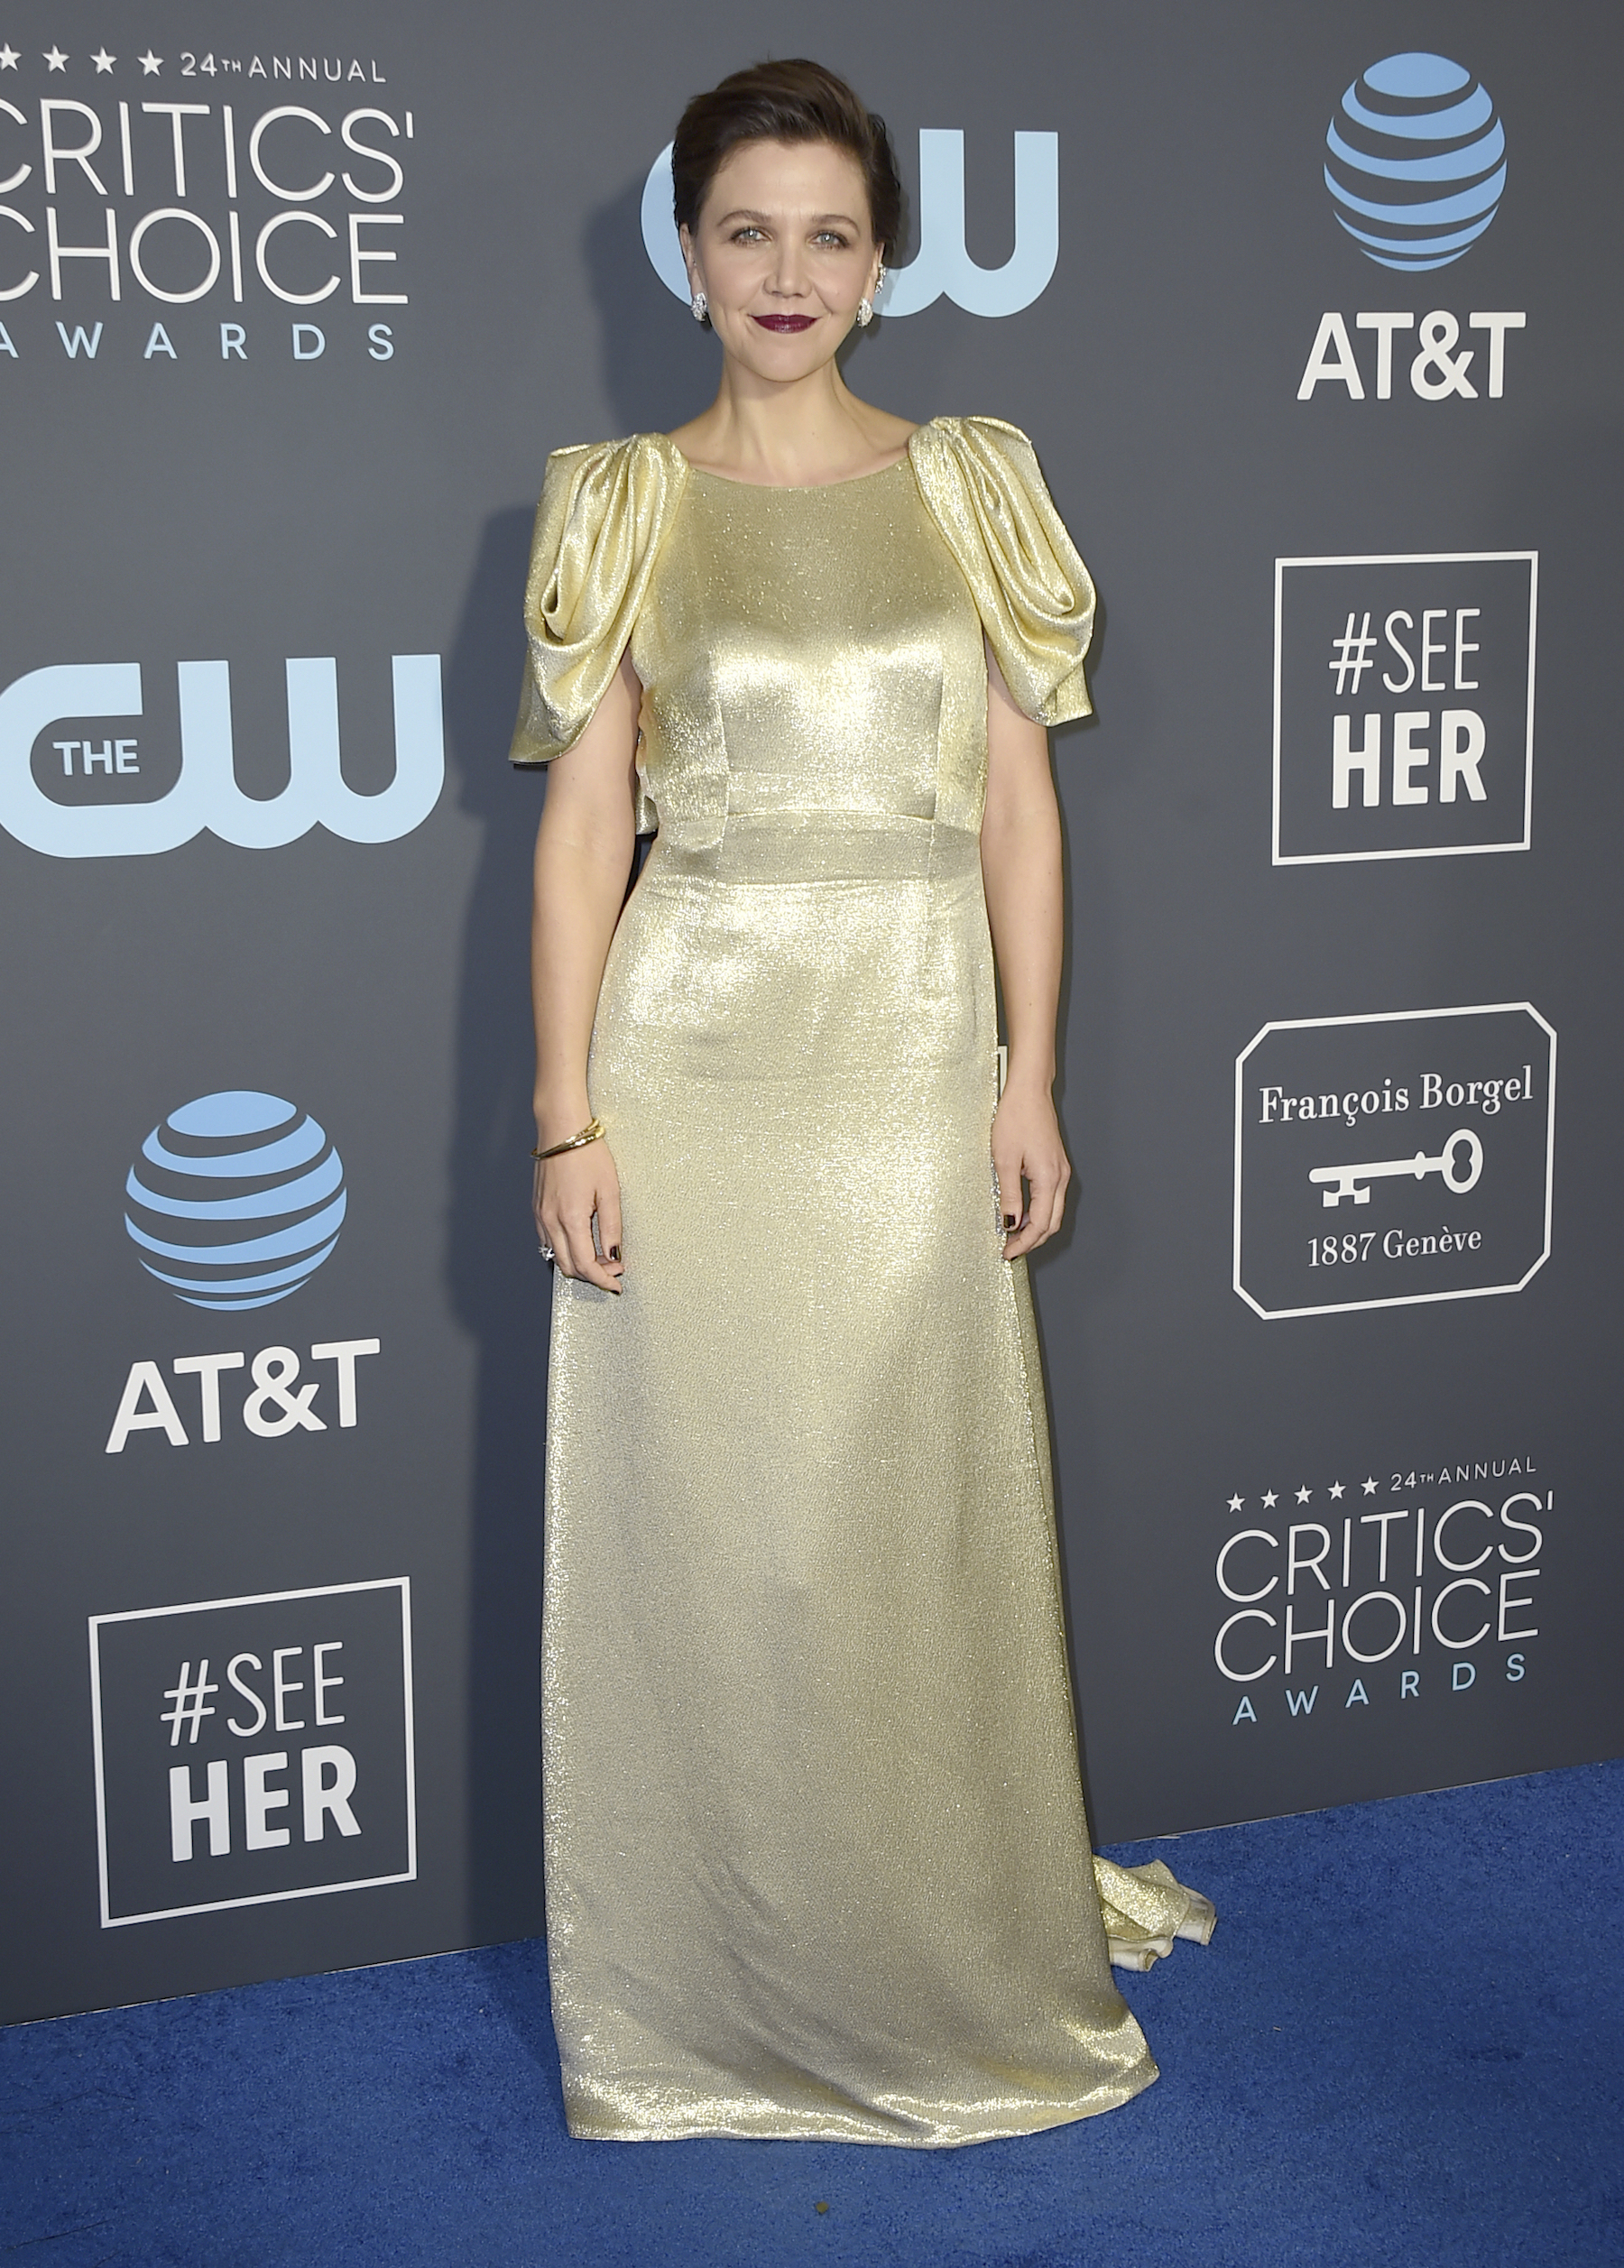 "<div class=""meta image-caption""><div class=""origin-logo origin-image ap""><span>AP</span></div><span class=""caption-text"">Maggie Gyllenhaal arrives at the 24th annual Critics' Choice Awards on Sunday, Jan. 13, 2019, at the Barker Hangar in Santa Monica, Calif. (Jordan Strauss/Invision/AP)</span></div>"